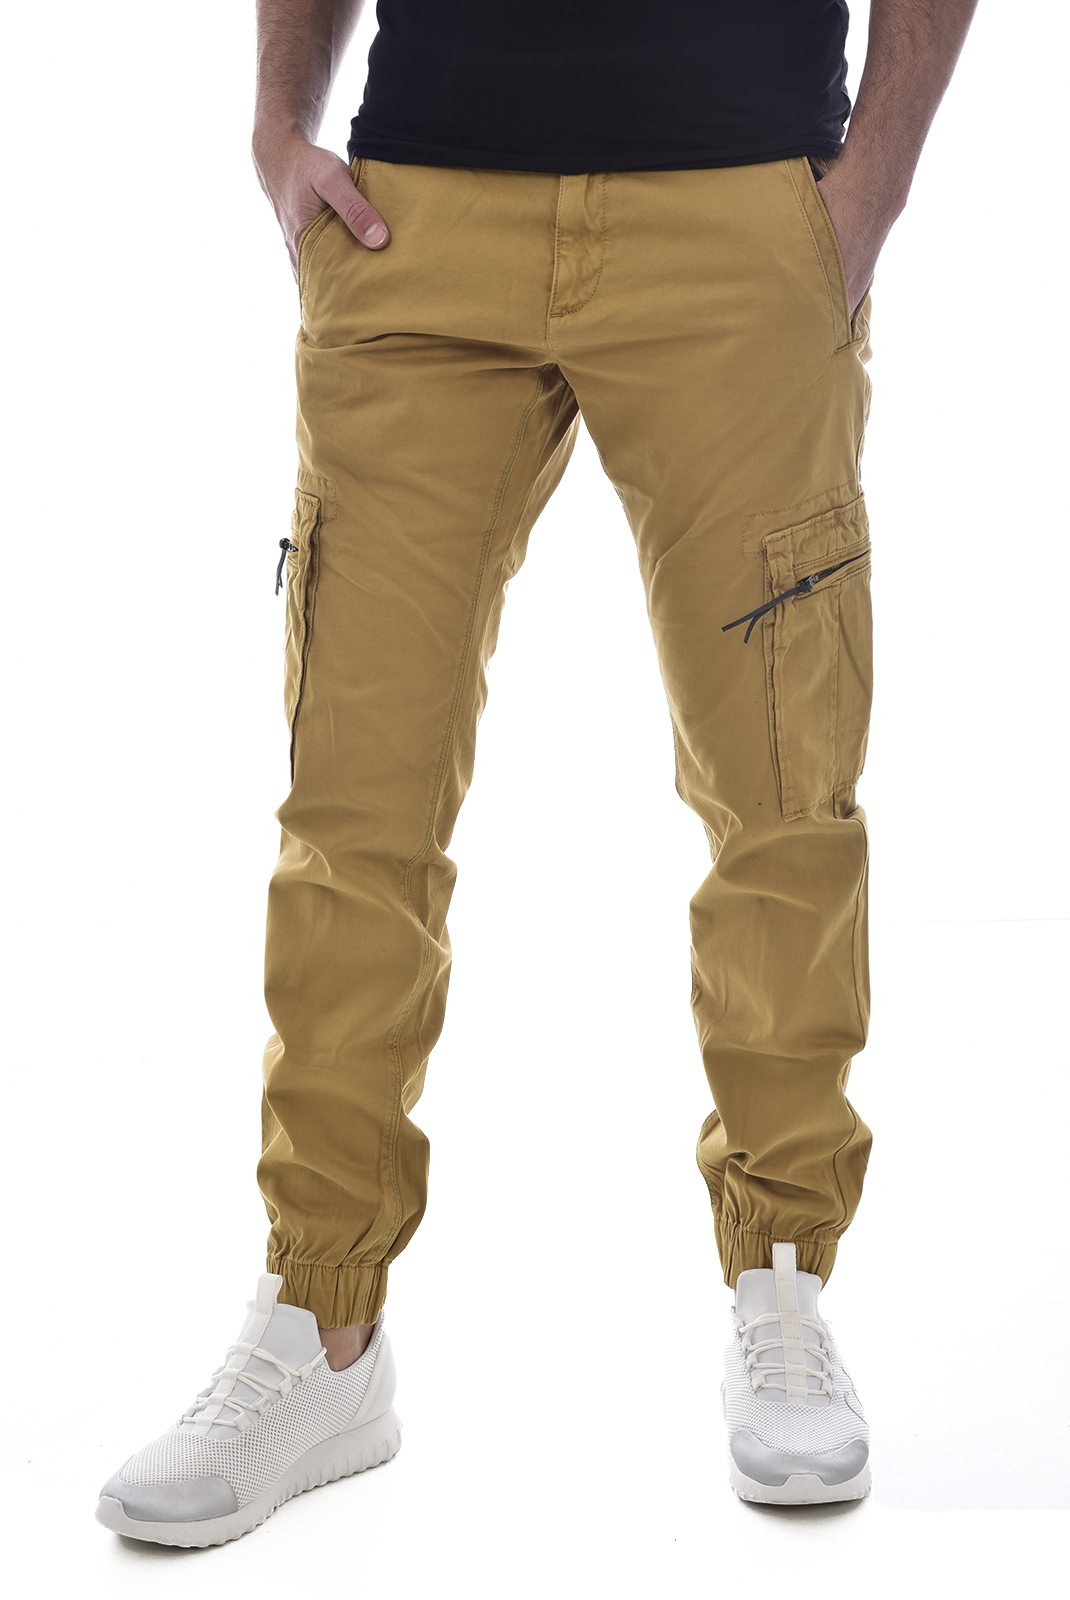 9fd68aa5eec1b KAPORAL PANTALON MULTIPOCHES CHEVILLES ELASTIQUEES GIPSY JAUNE HOMME